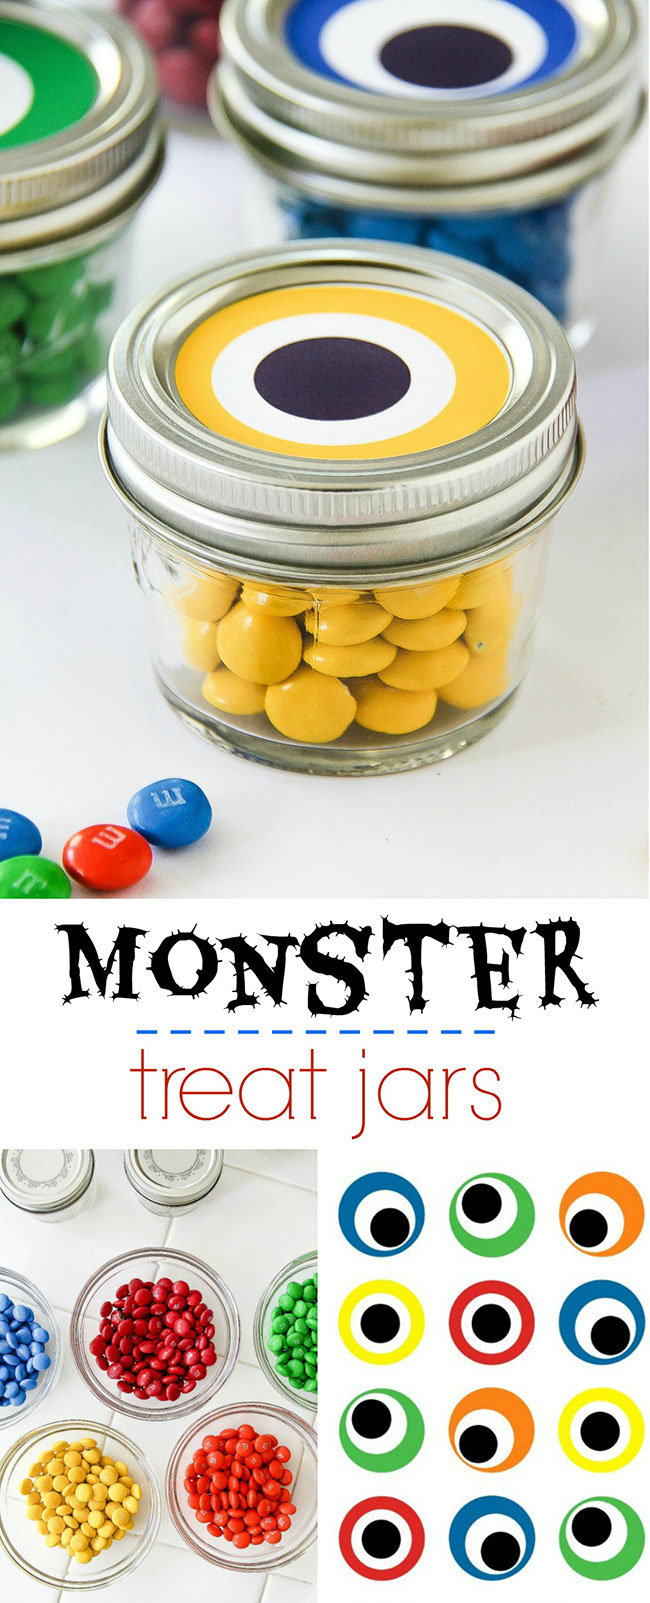 Easy Monster Treat Jars